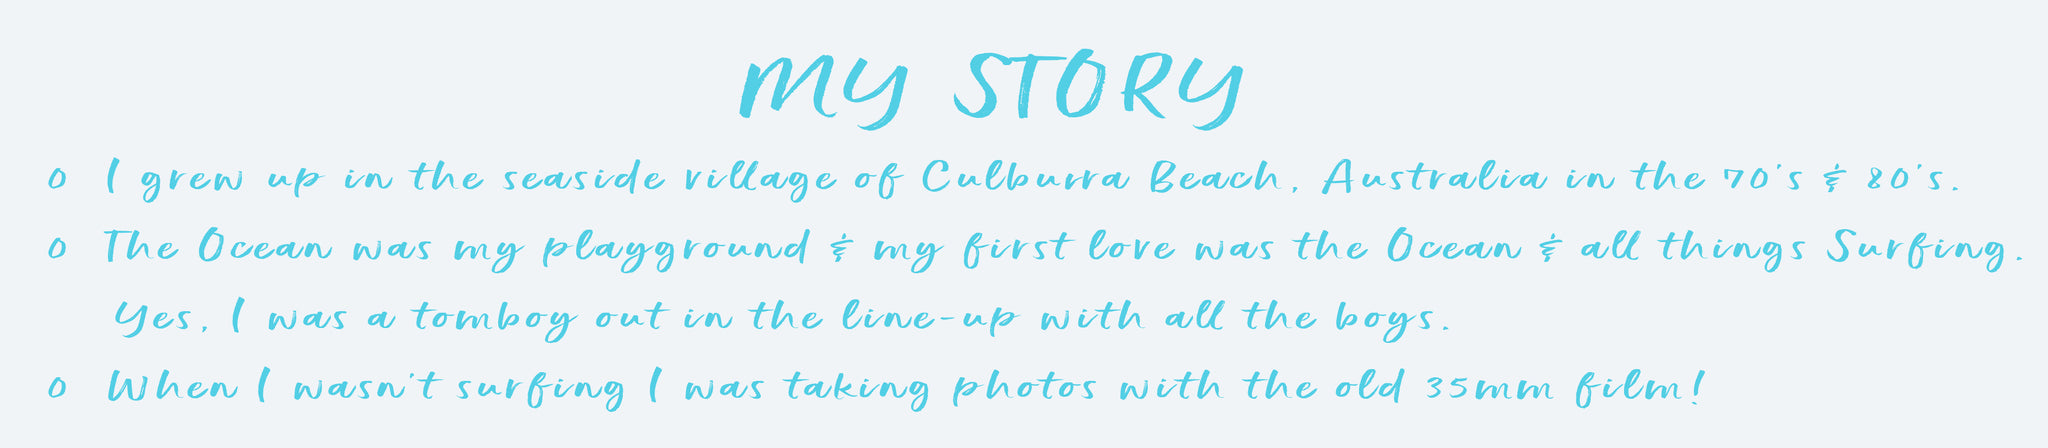 My Story for About Us Page SeaHouse Imagery